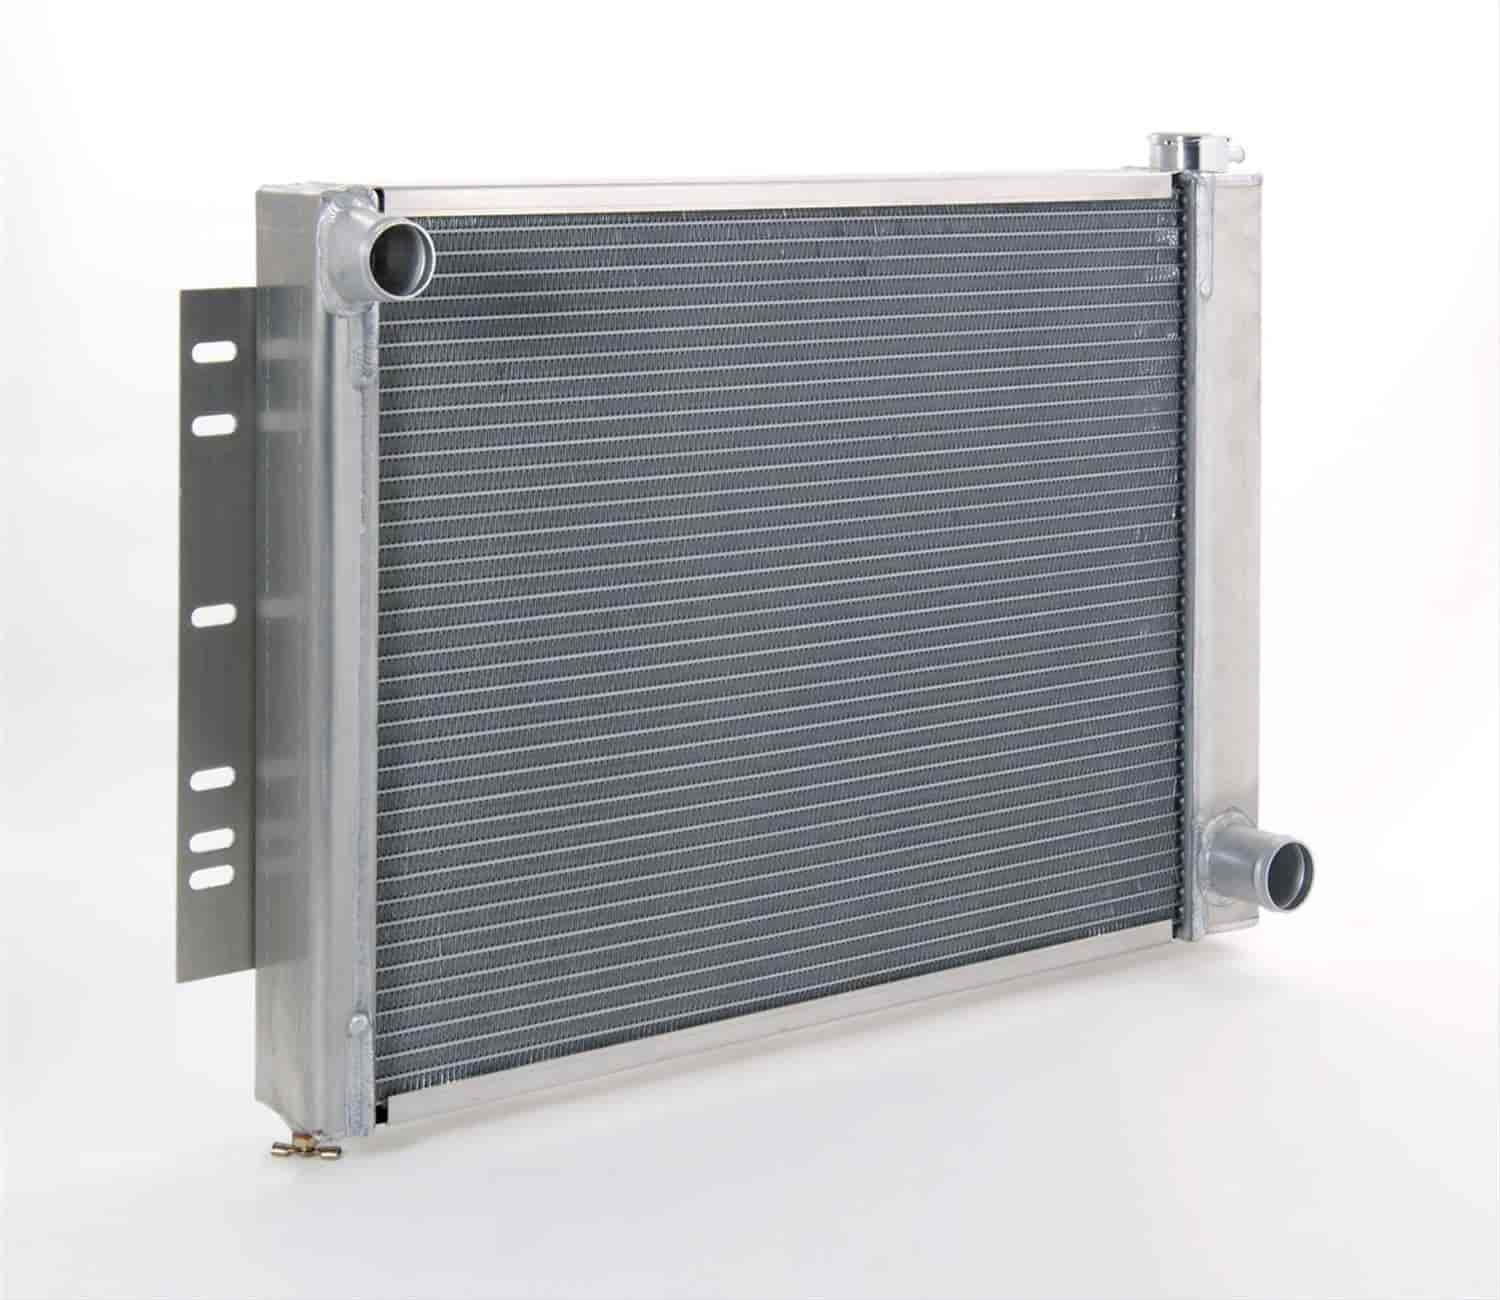 Be Cool Radiators 60016 - Be Cool Chevrolet Car Direct-Fit Aluminum Radiators